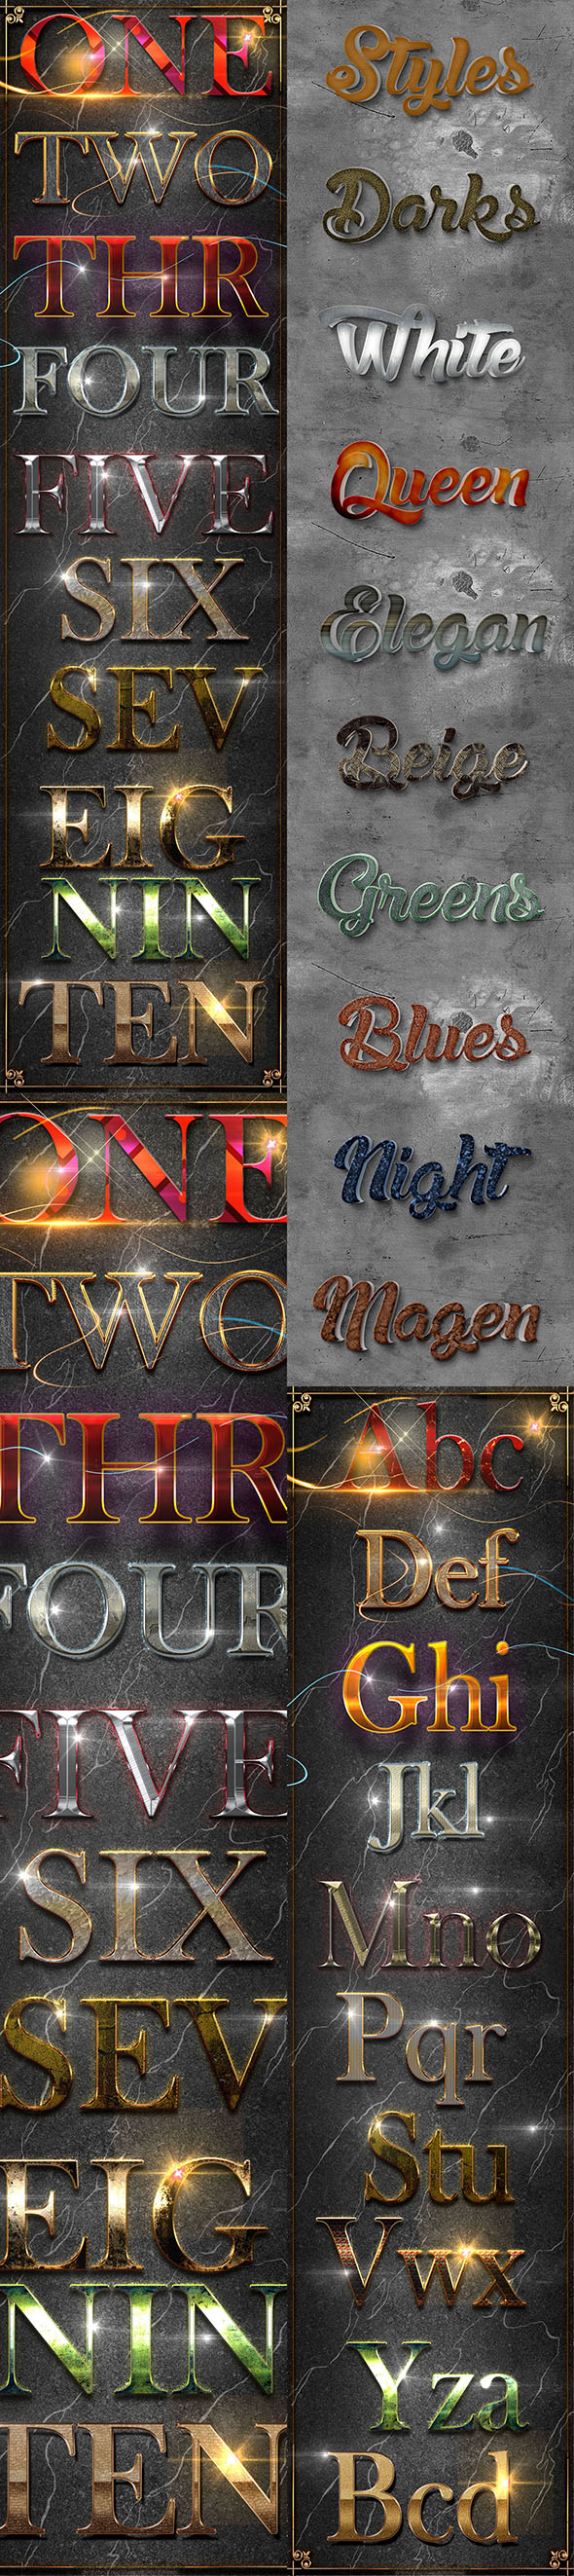 30 Bundle 3D Text Styles D35-D37 - Styles Photoshop